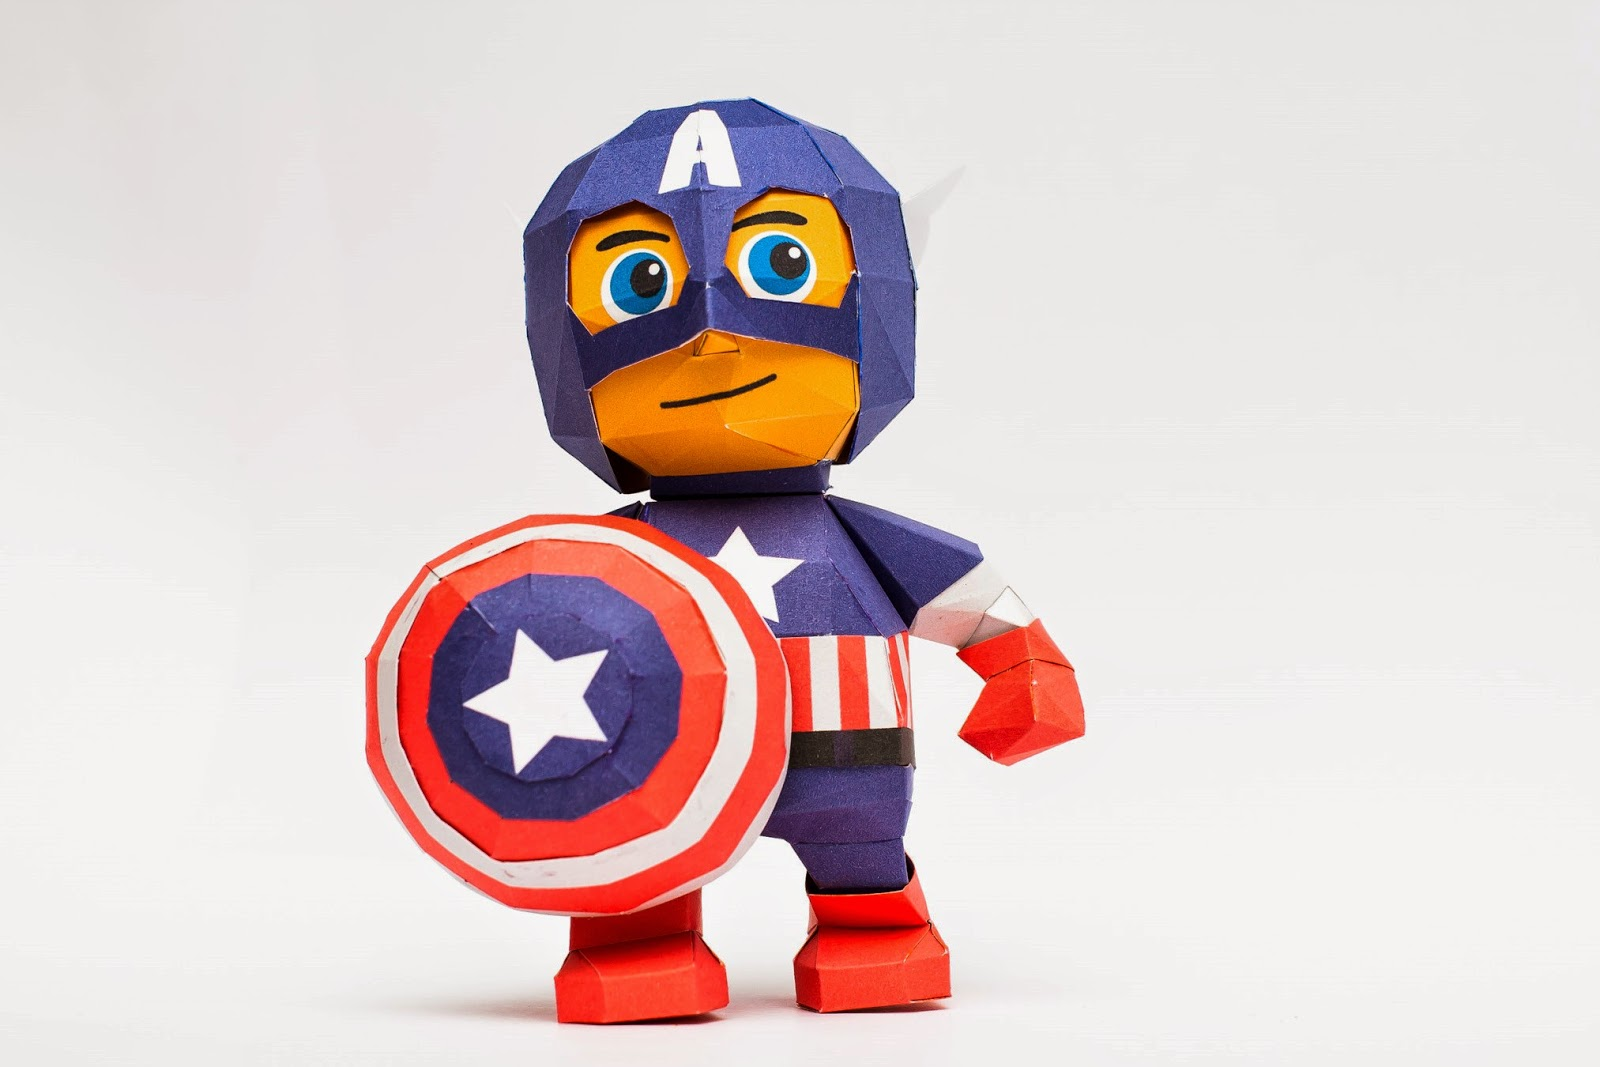 Chibi Captain America Papercraft Model Toy